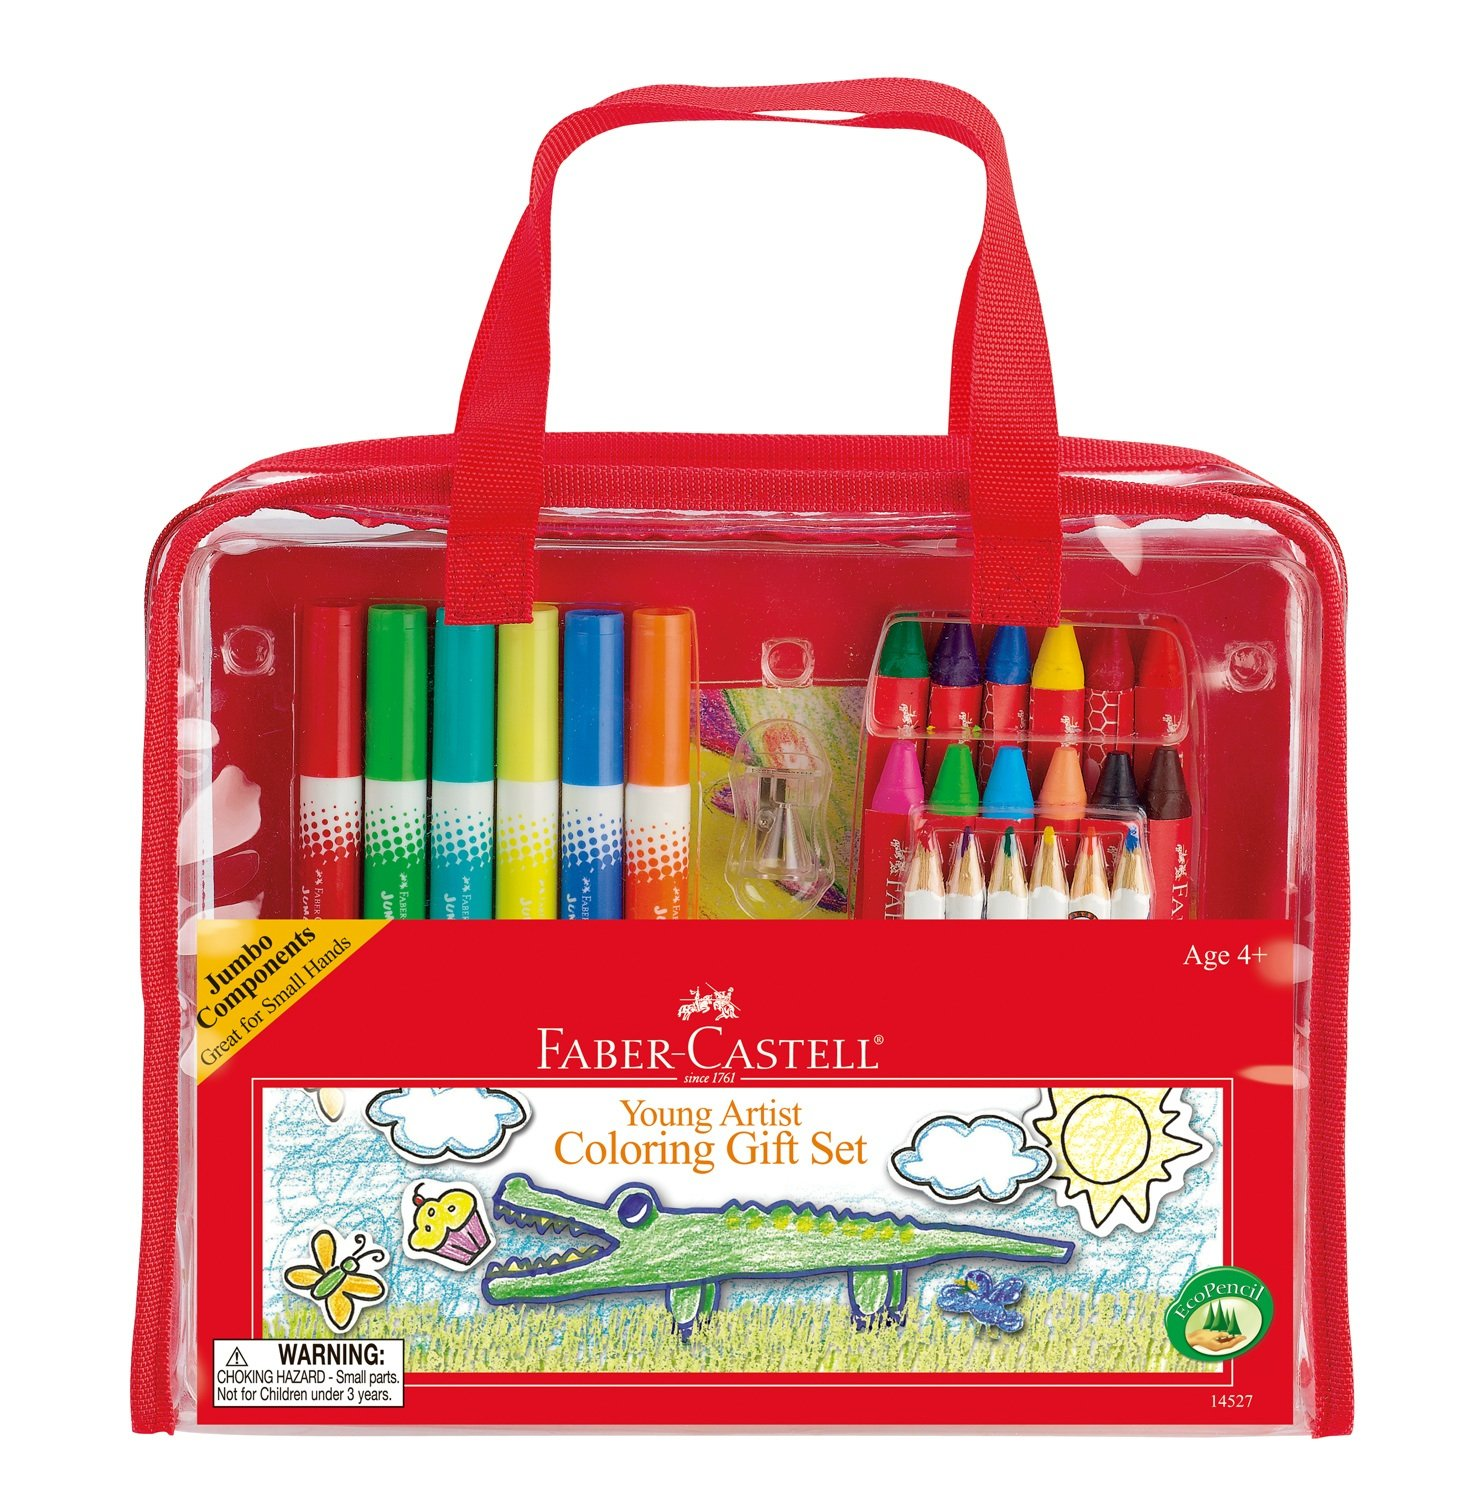 Faber castell gift set india gift ftempo for Arts and crafts sets for toddlers